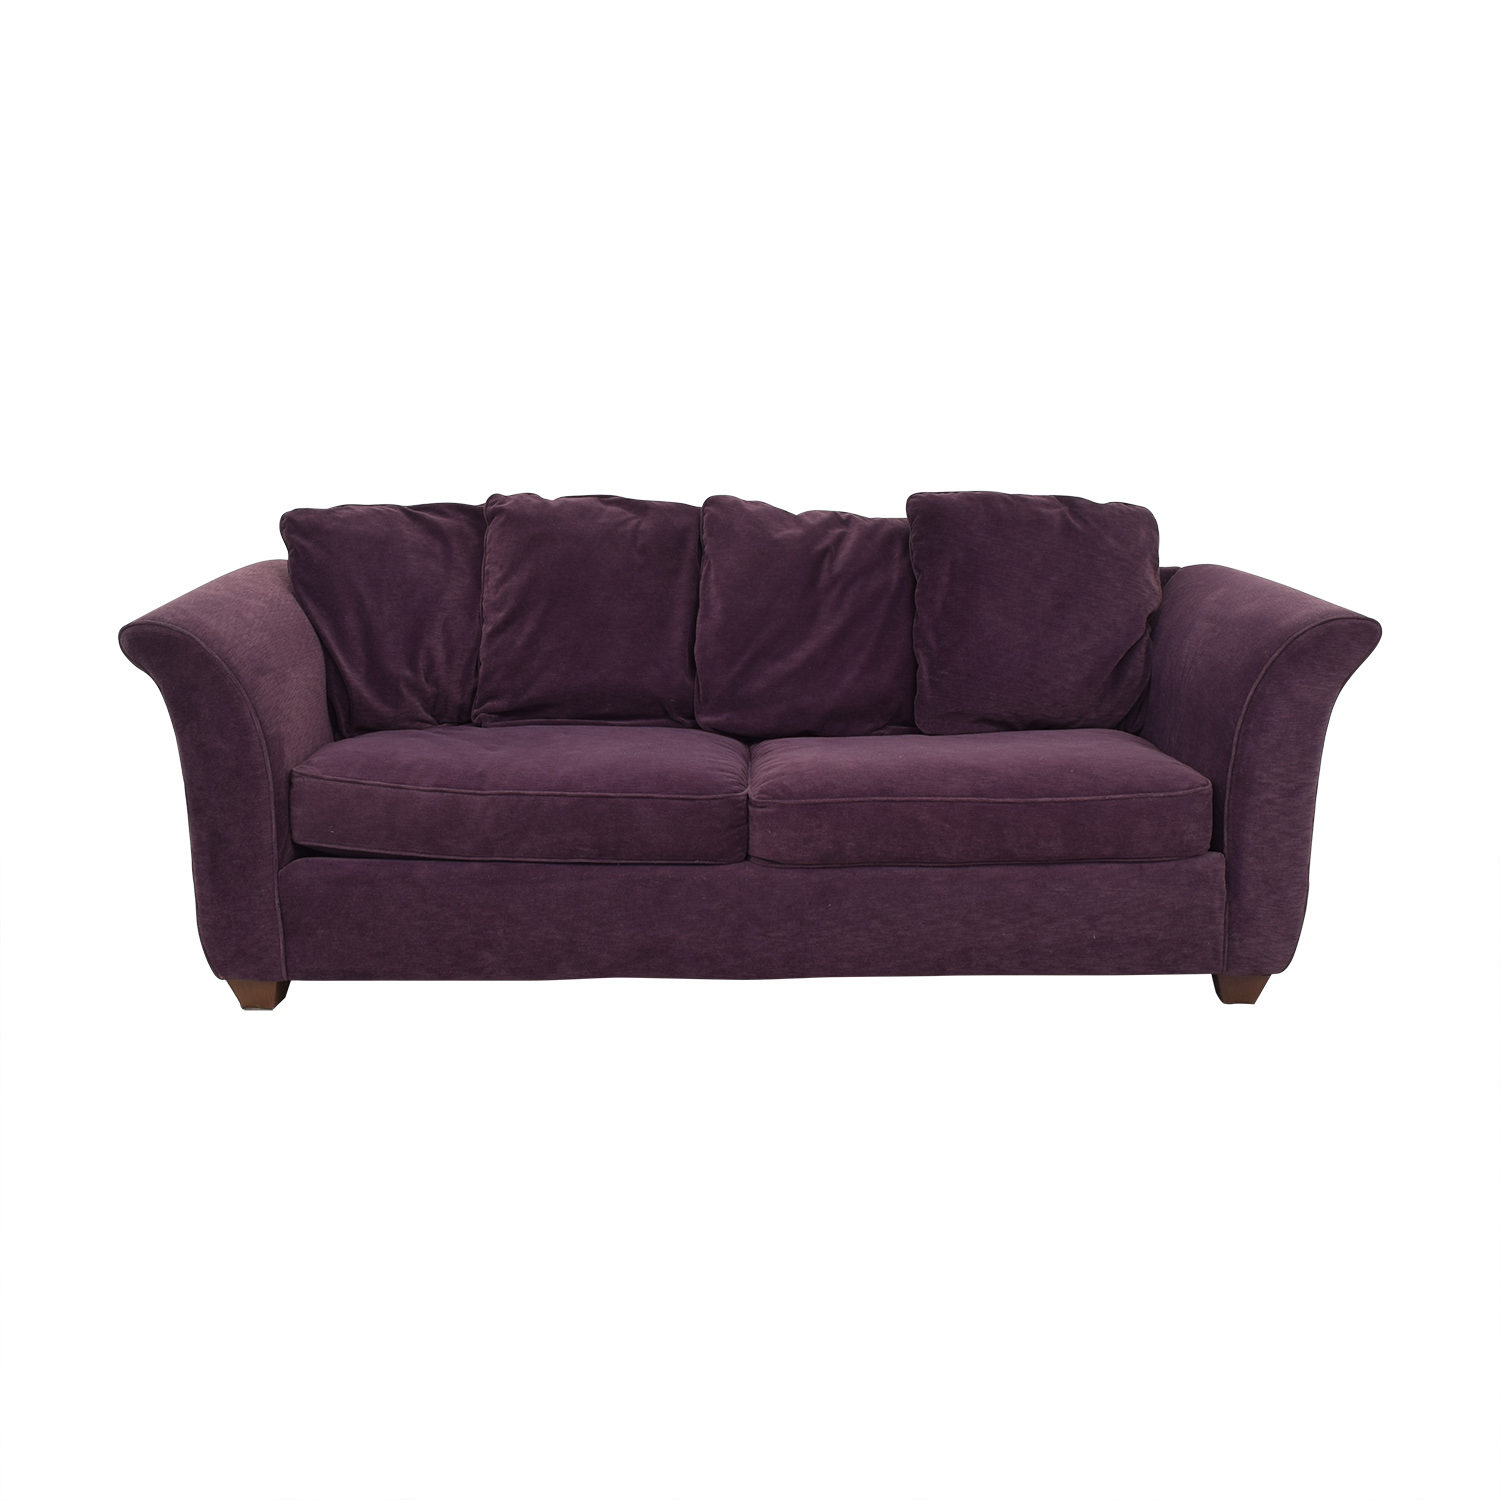 Bauhaus Furniture Bauhaus Three Cushion Sofa on sale